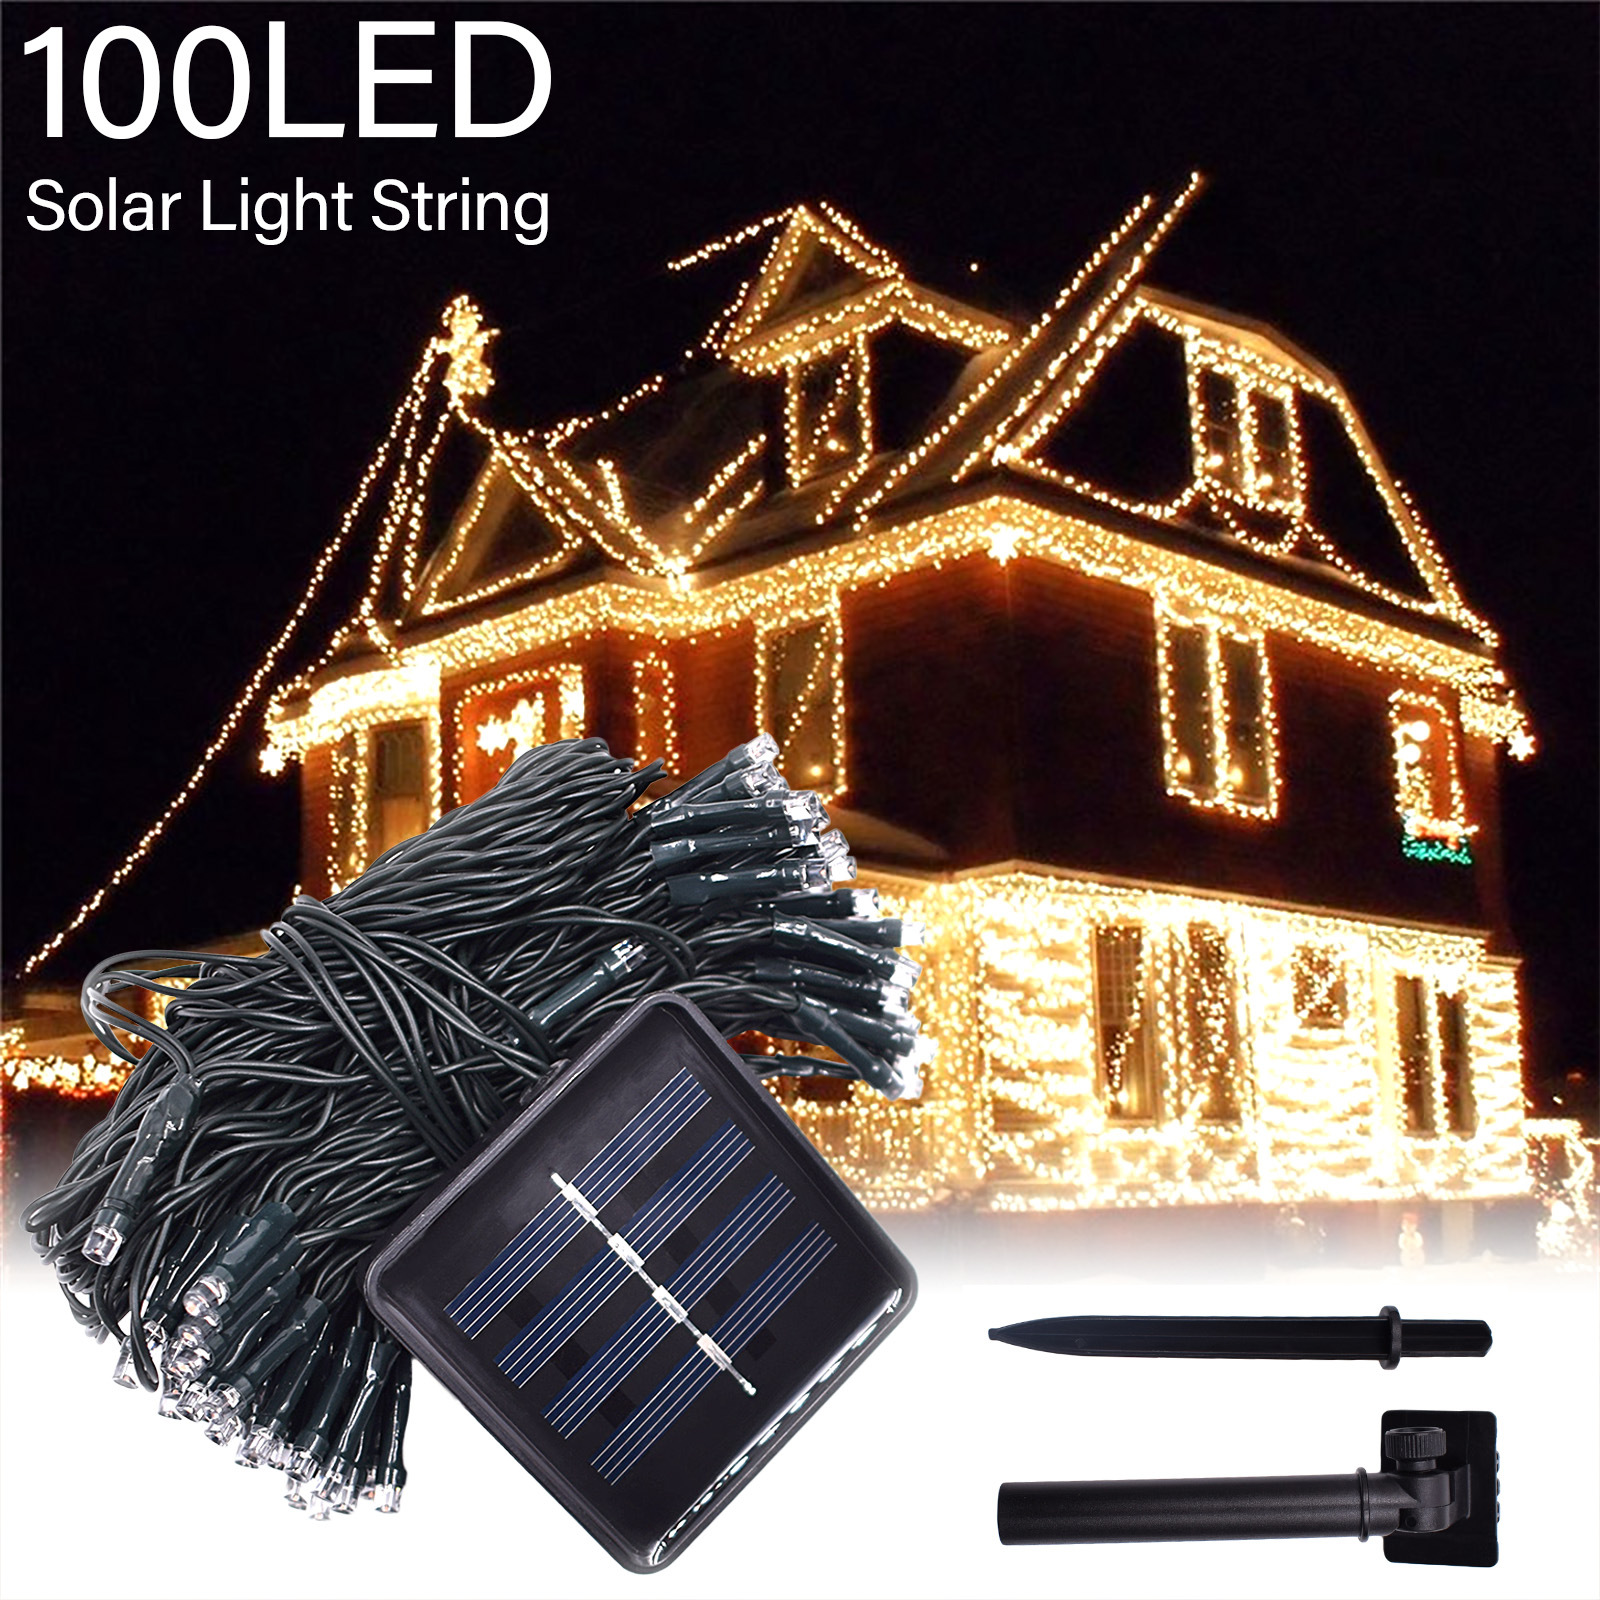 8 Modes Solar String Lights Outdoor Lighting Waterproof Christmas Fairy Light for Xmas Garden Homes Ambiance Wedding Party Decor|Lighting Strings| |  - title=